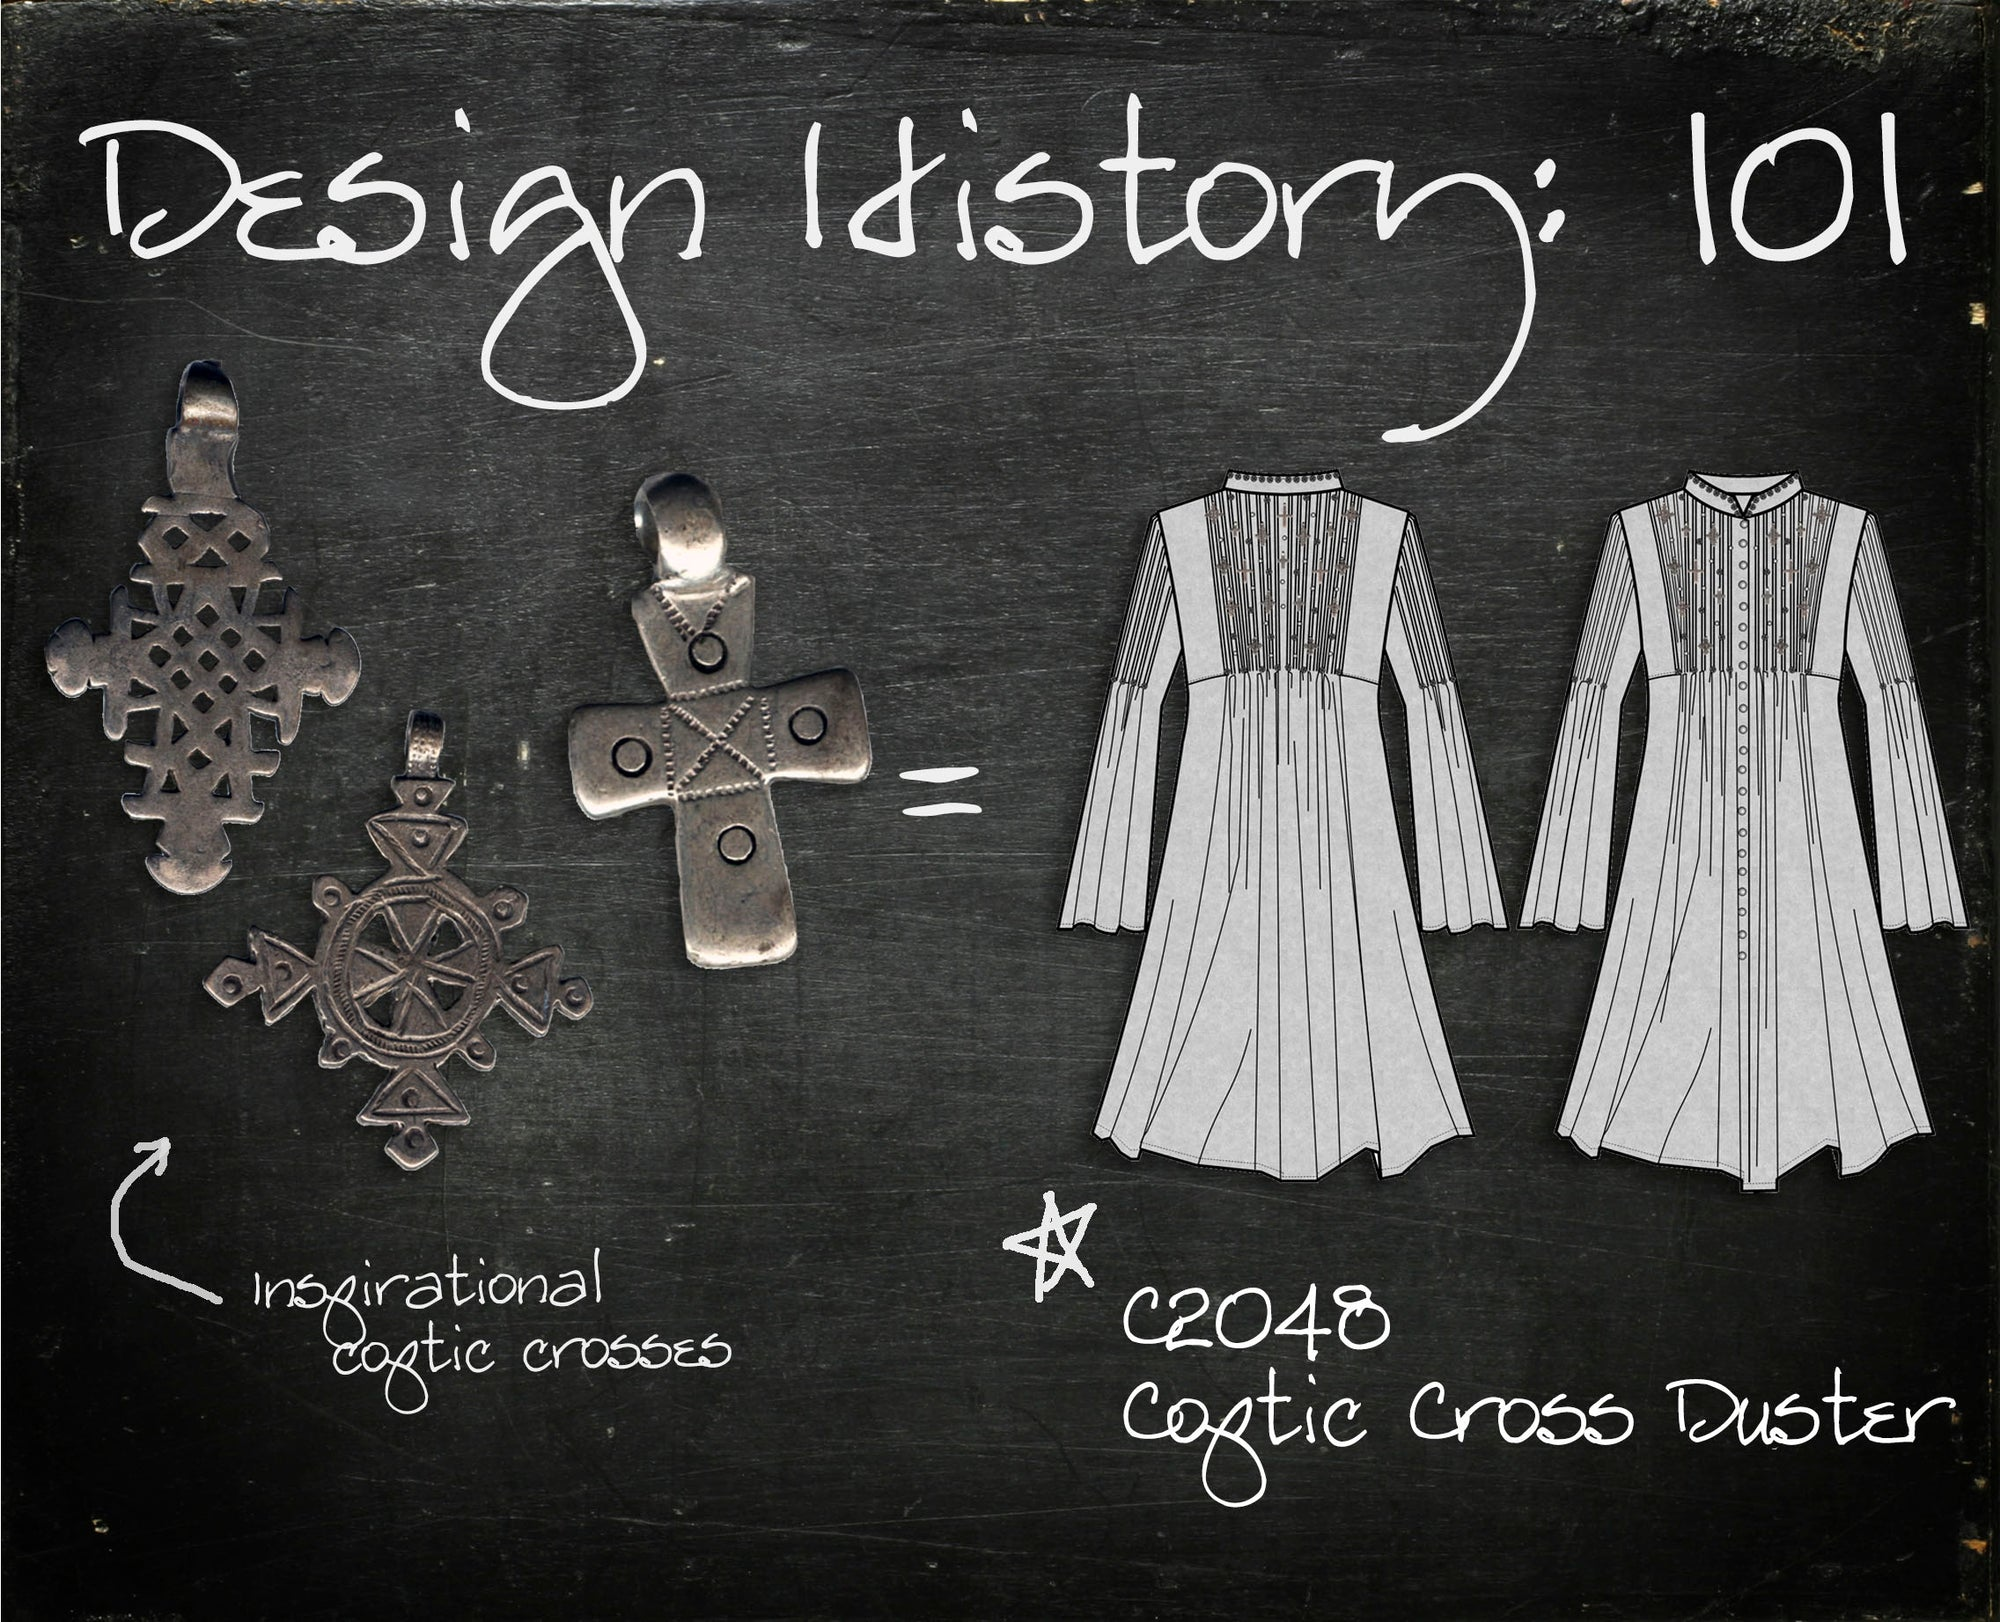 Design History 101: Coptic Cross Duster